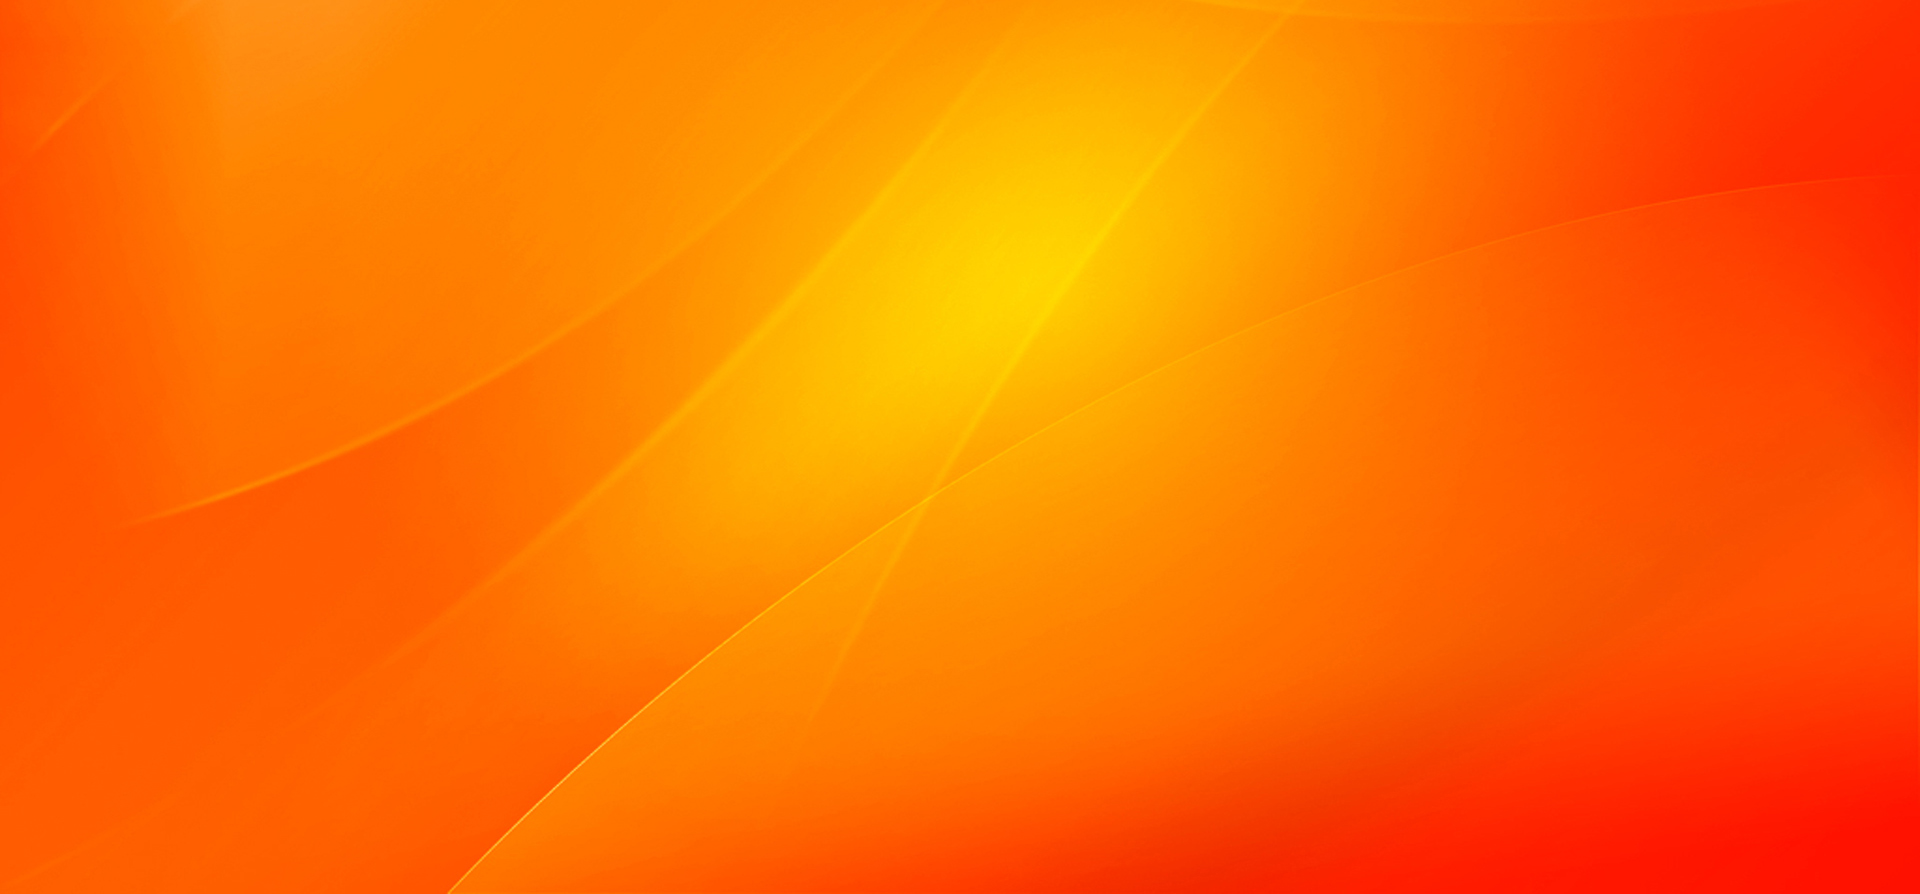 orange_background